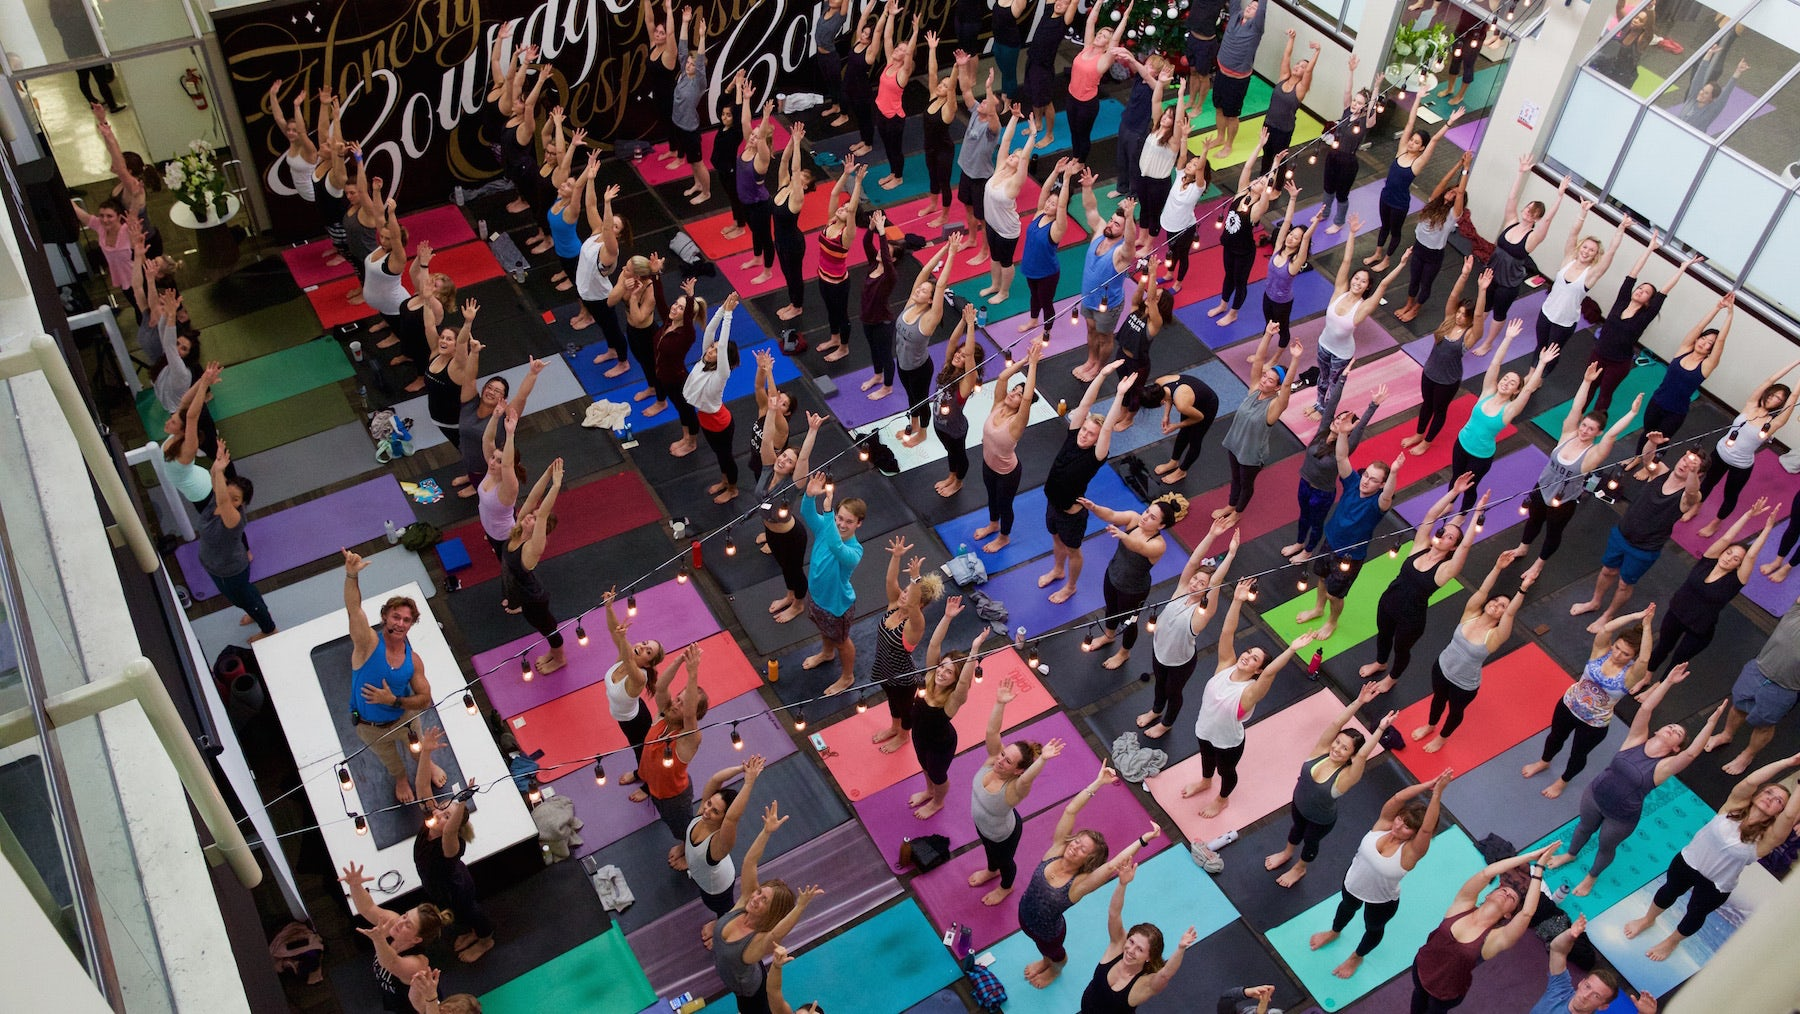 Why America's Retailers Are Tapping Into Wellness For Growth